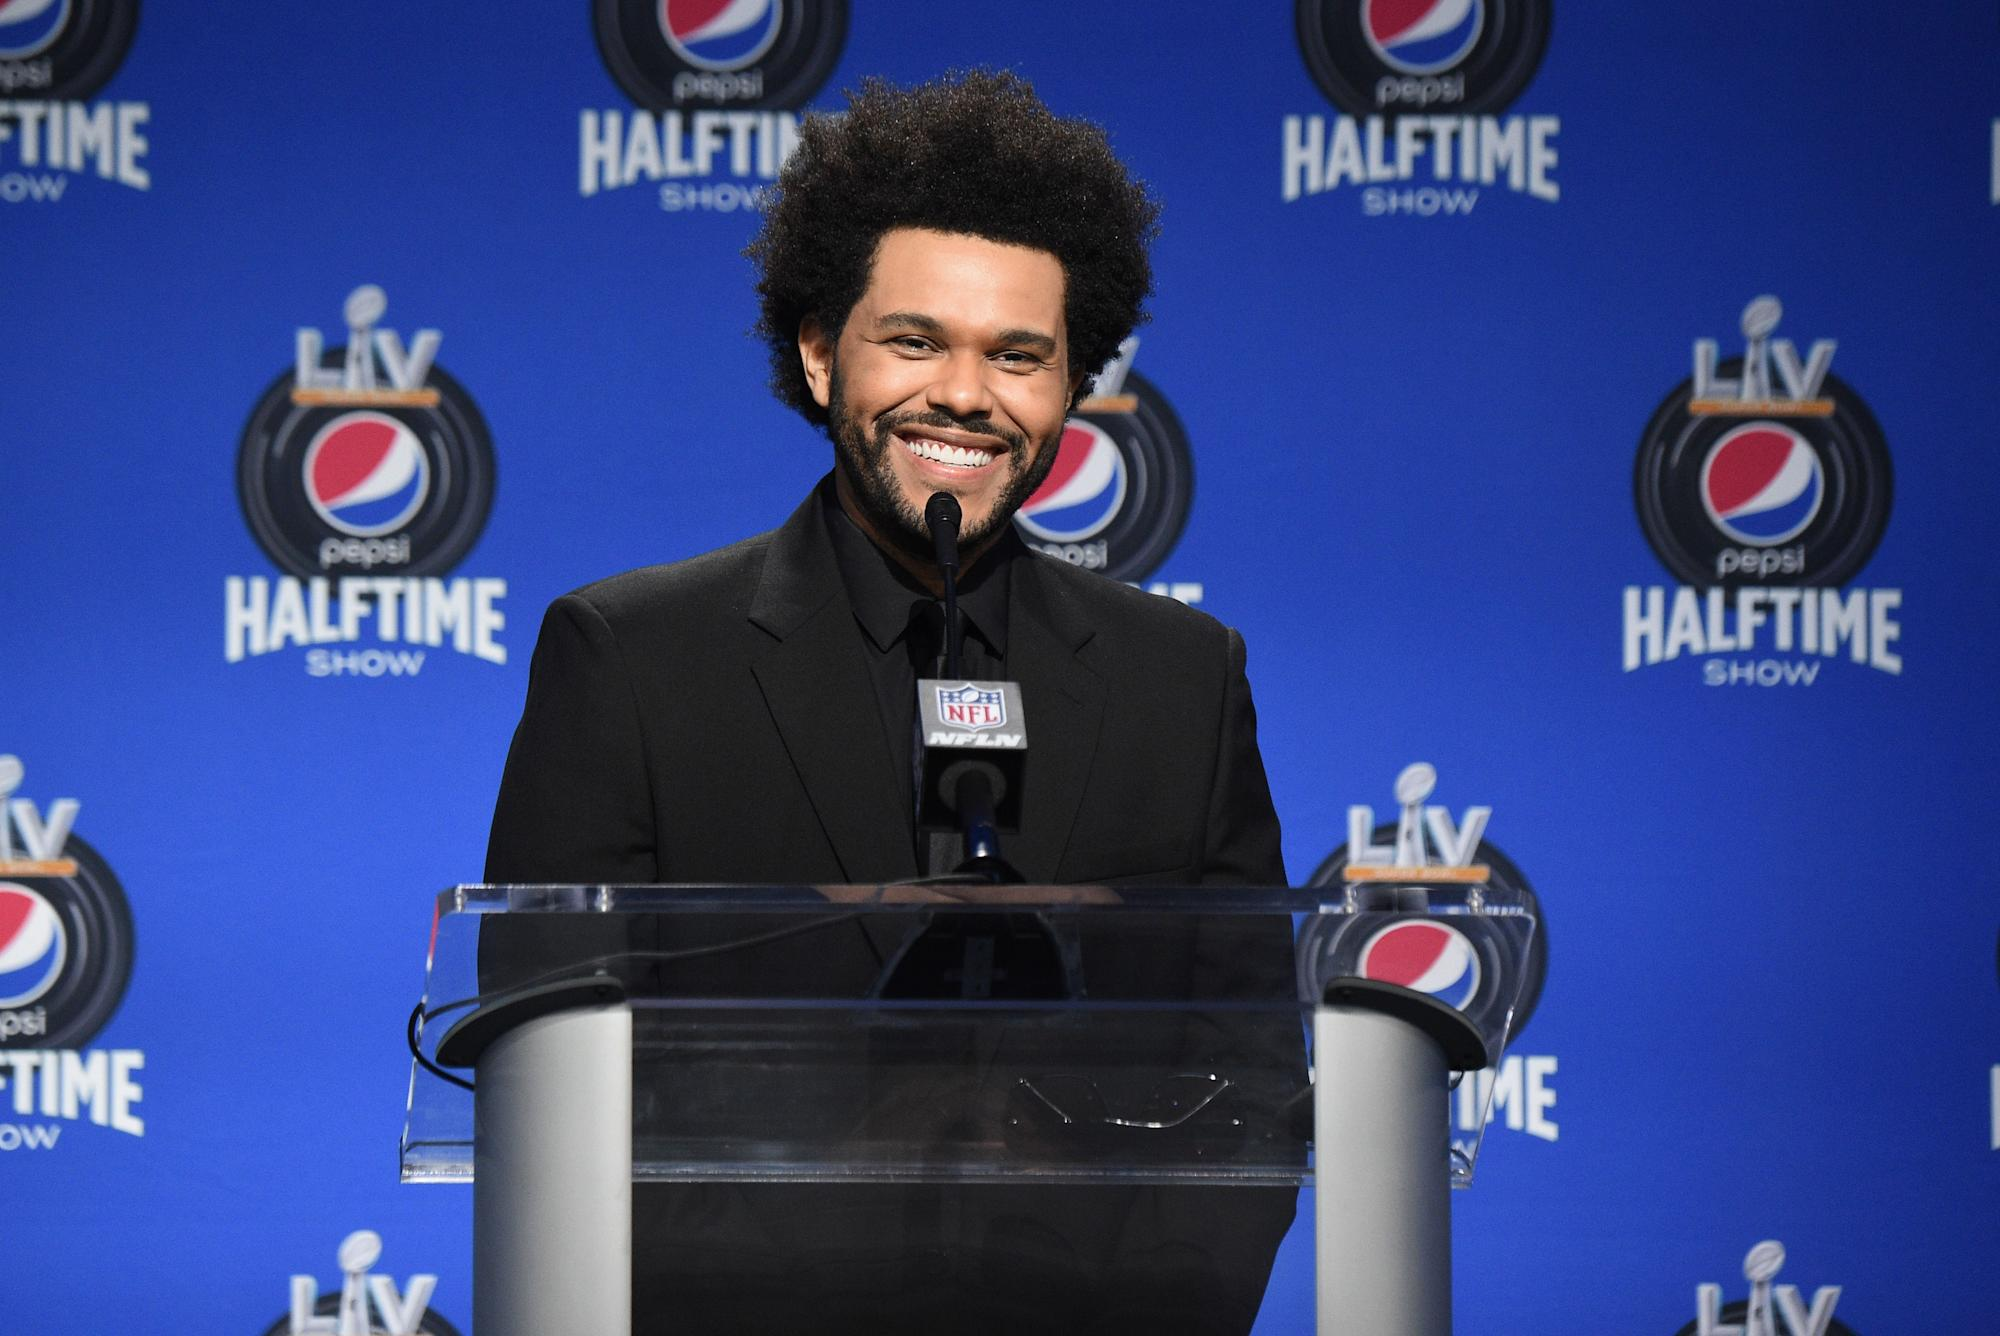 Super Bowl halftime performer The Weeknd promises show will be family-friendly - Yahoo Sports